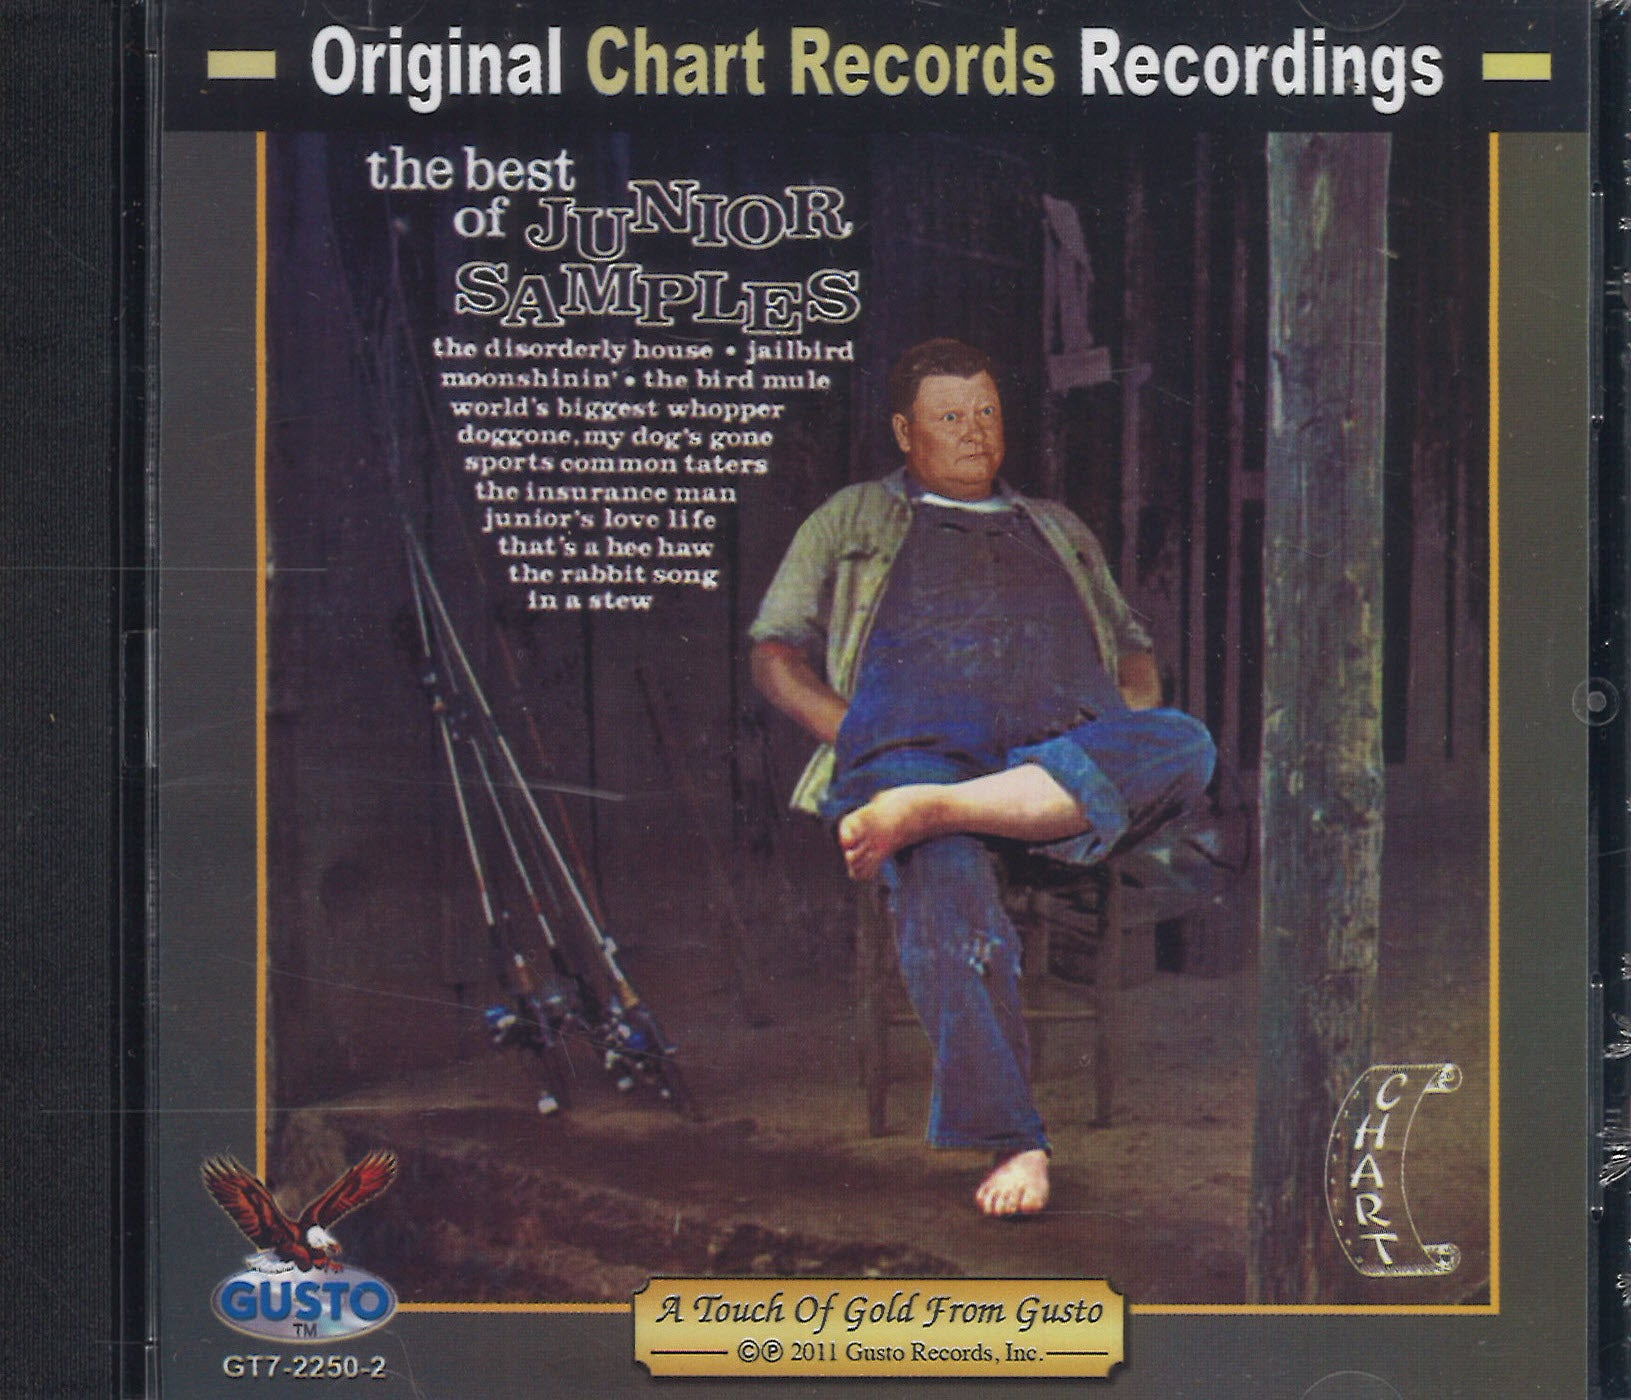 The Best Of Junior Samples